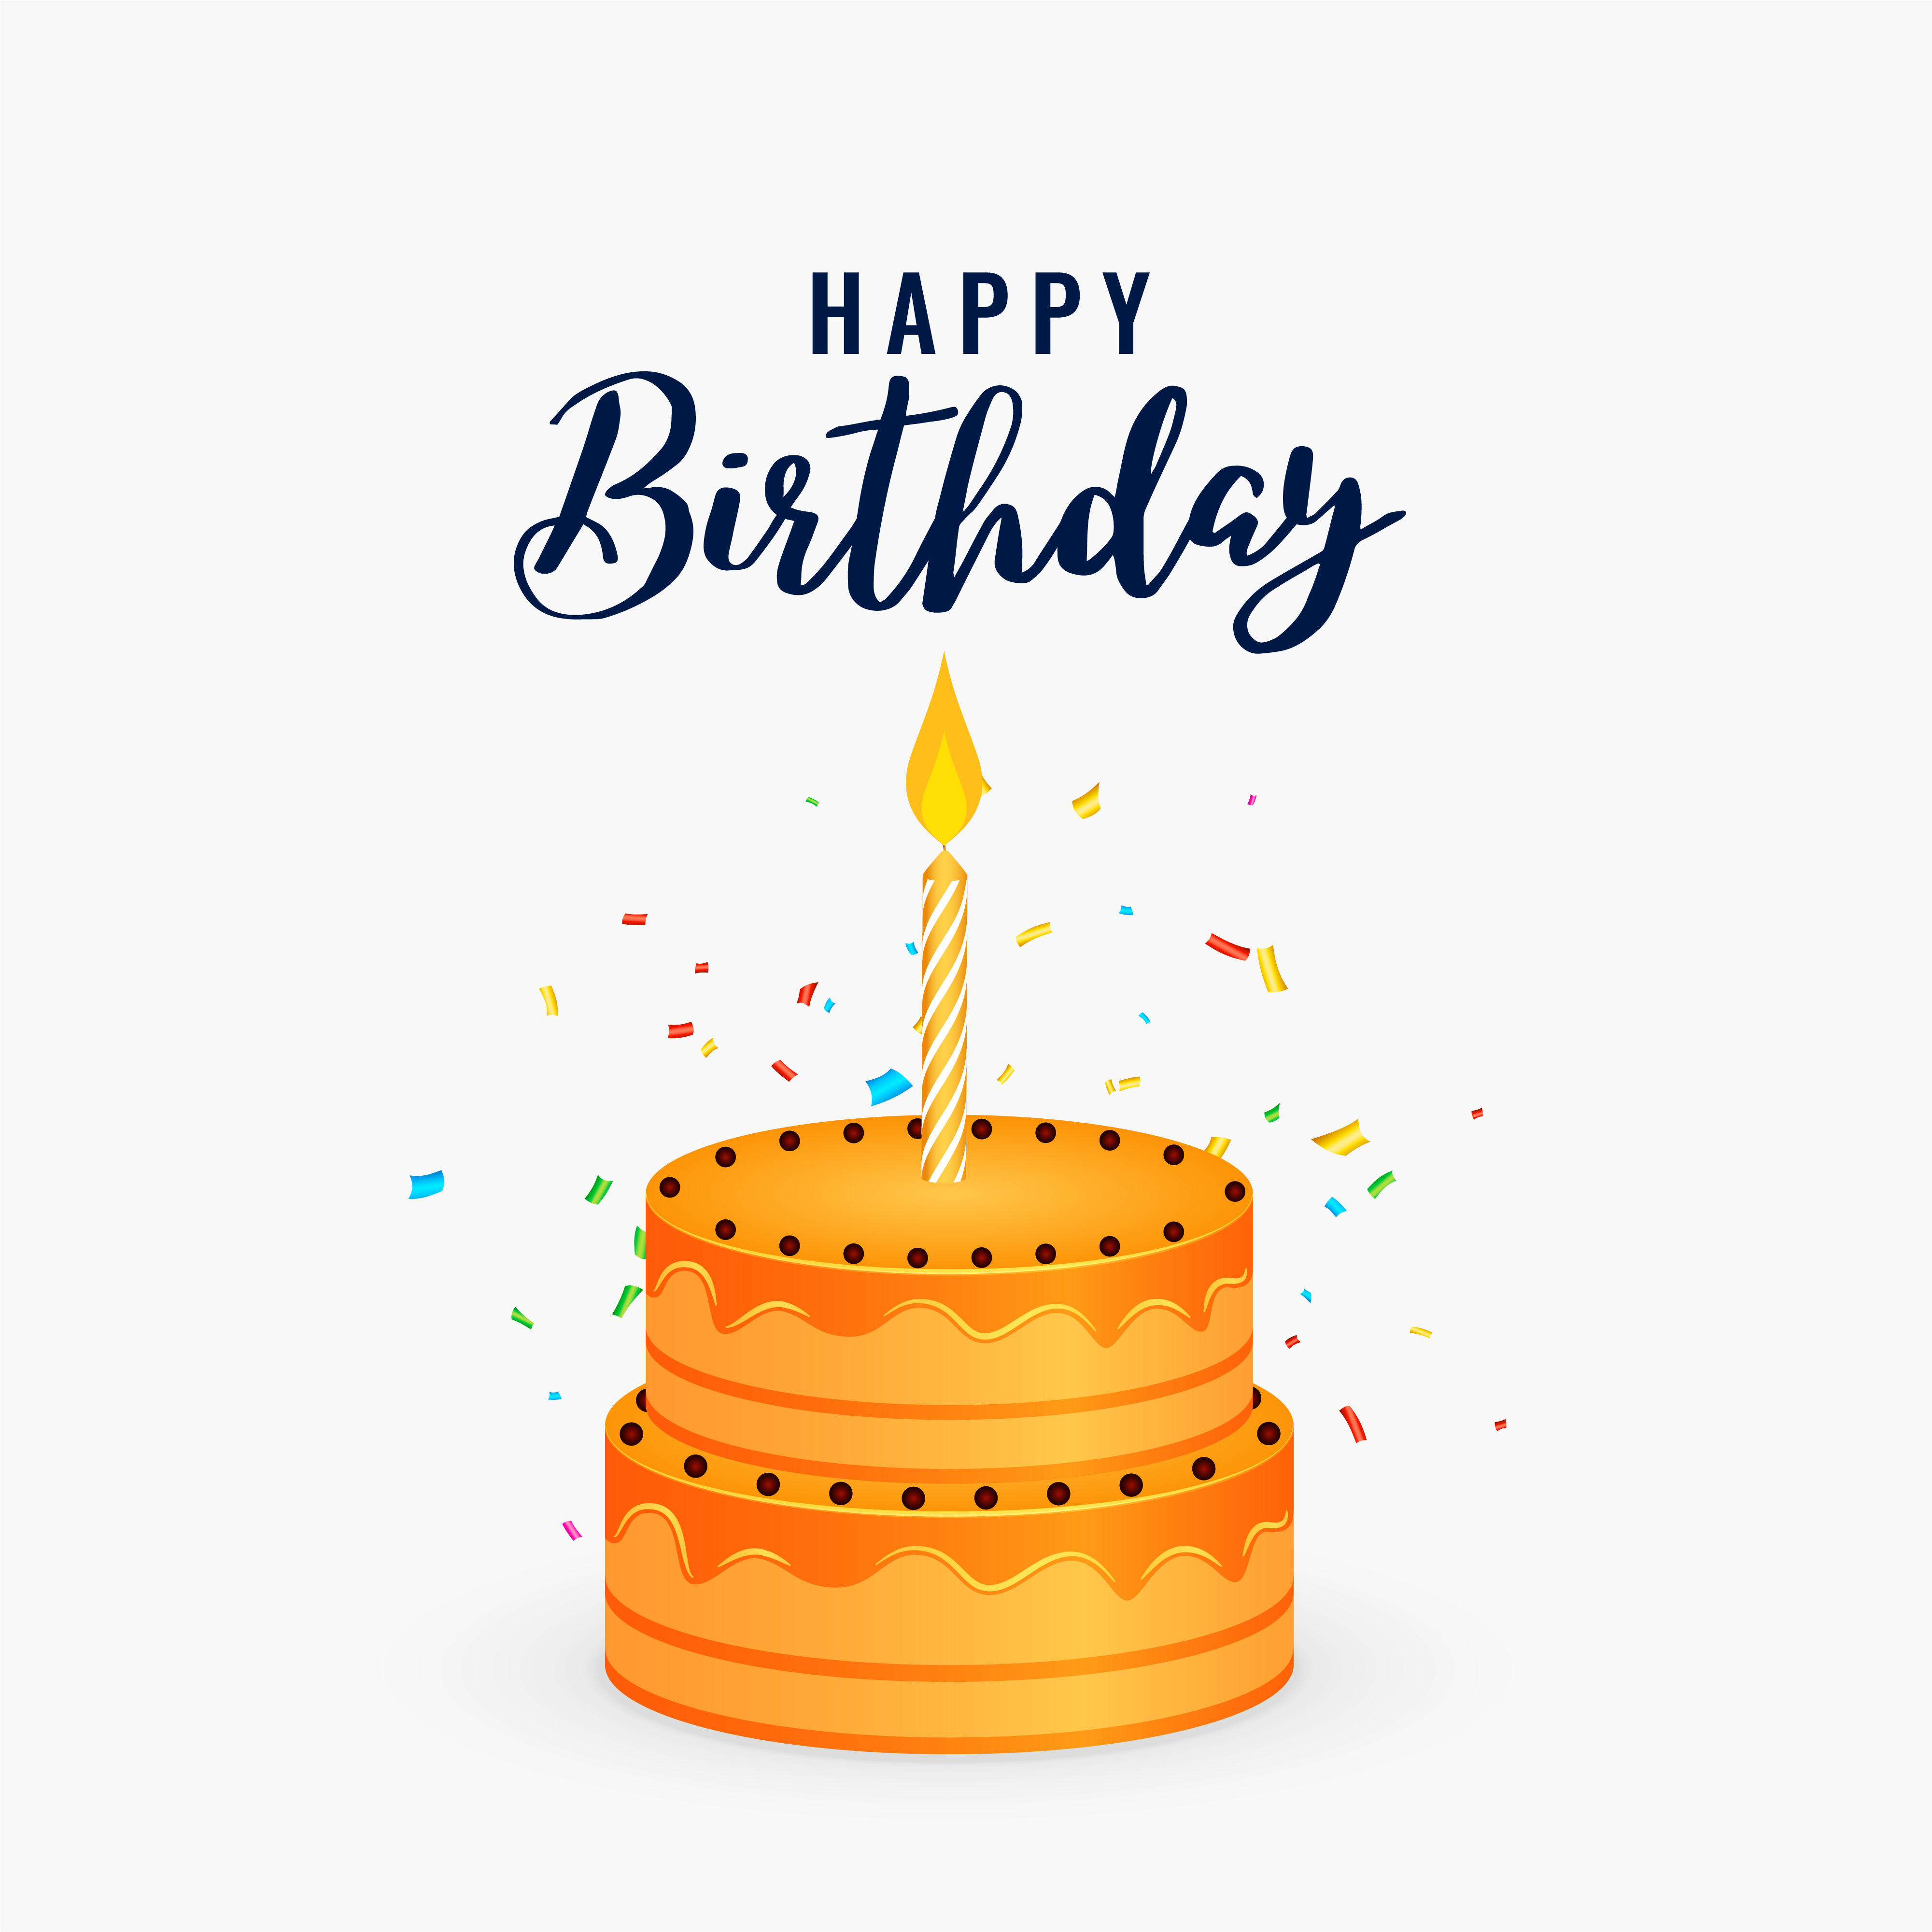 Happy Birthday Cake With Candle Celebration Background Download